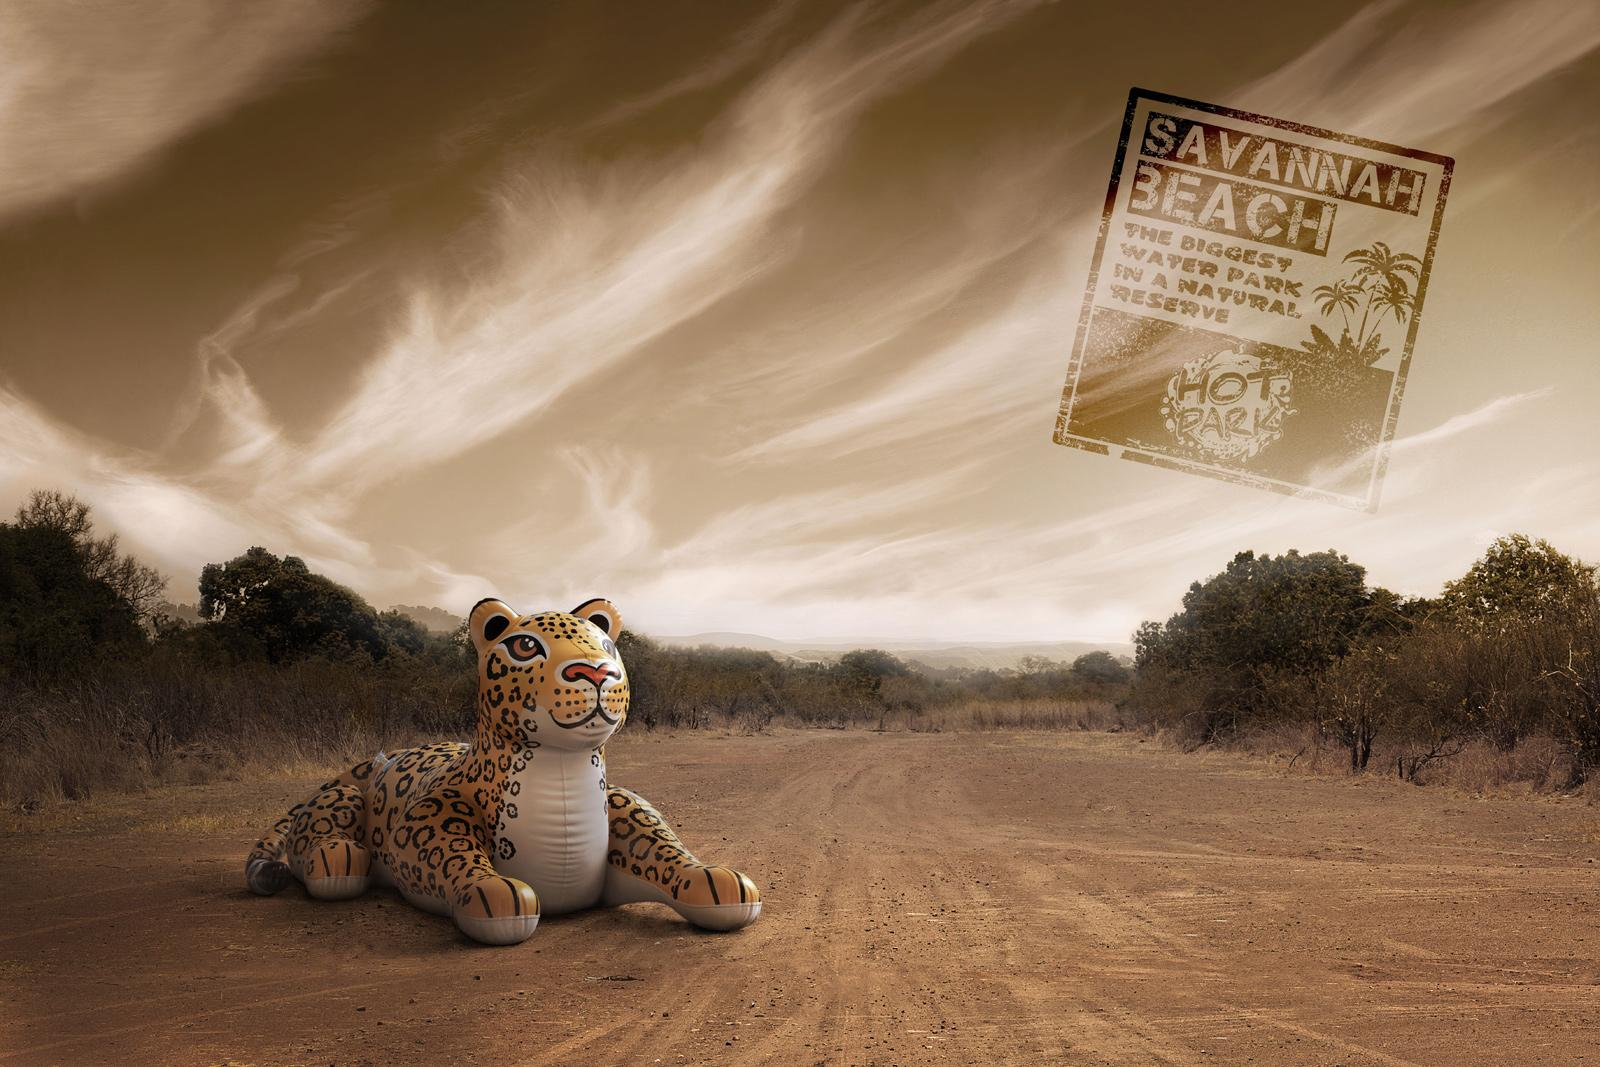 Hot Park Water park Print Ad -  Jaguar